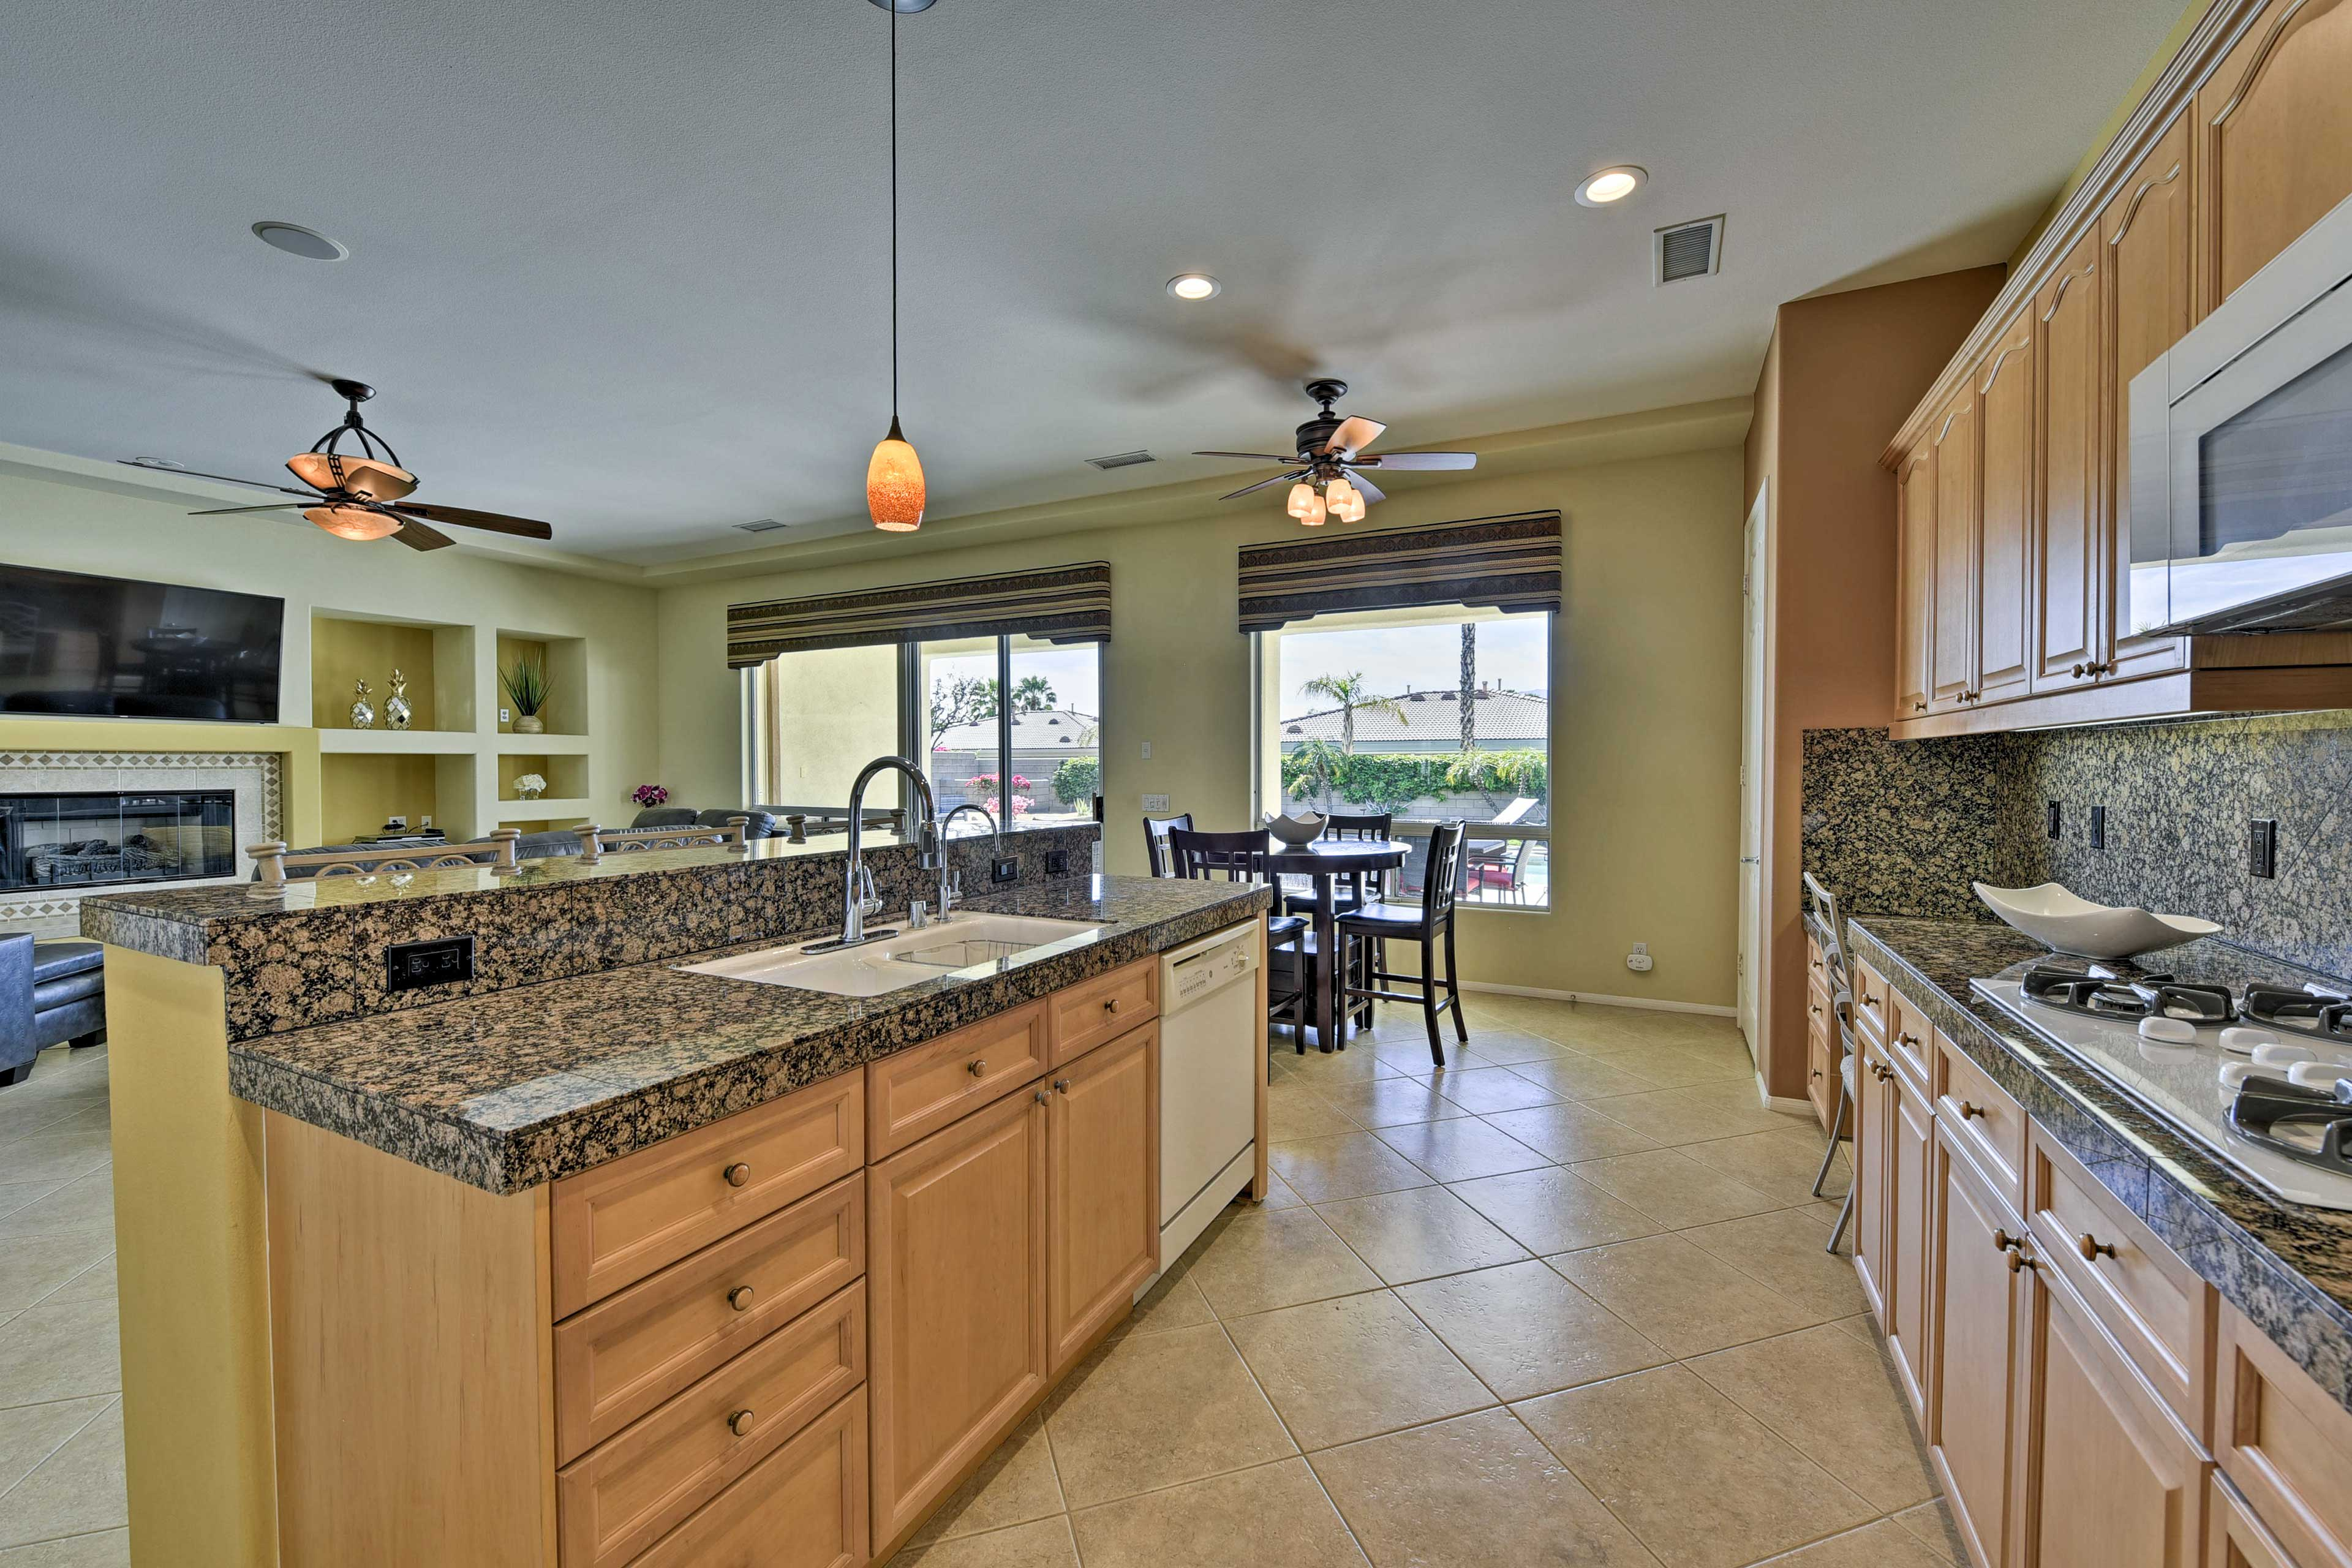 This gourmet kitchen is adorned with granite countertops and modern appliances.